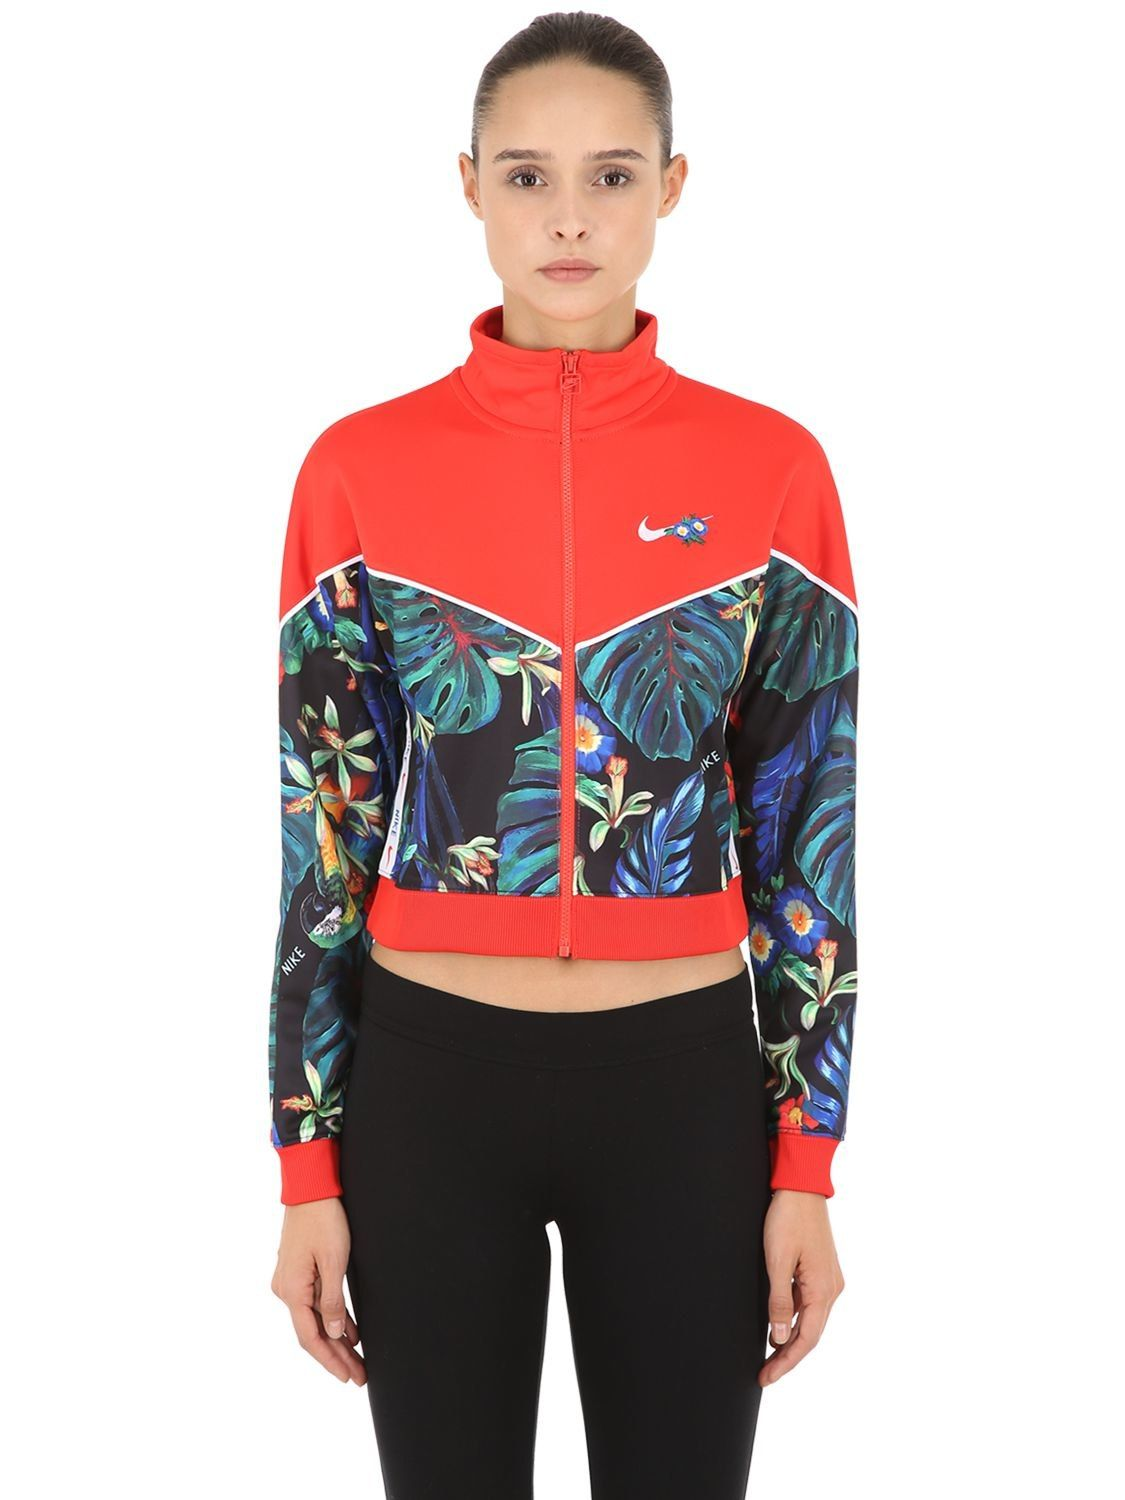 Nike Floral Cropped Track Jacket on Avoir Fashion!   Jackets, Womens  activewear, Track jackets